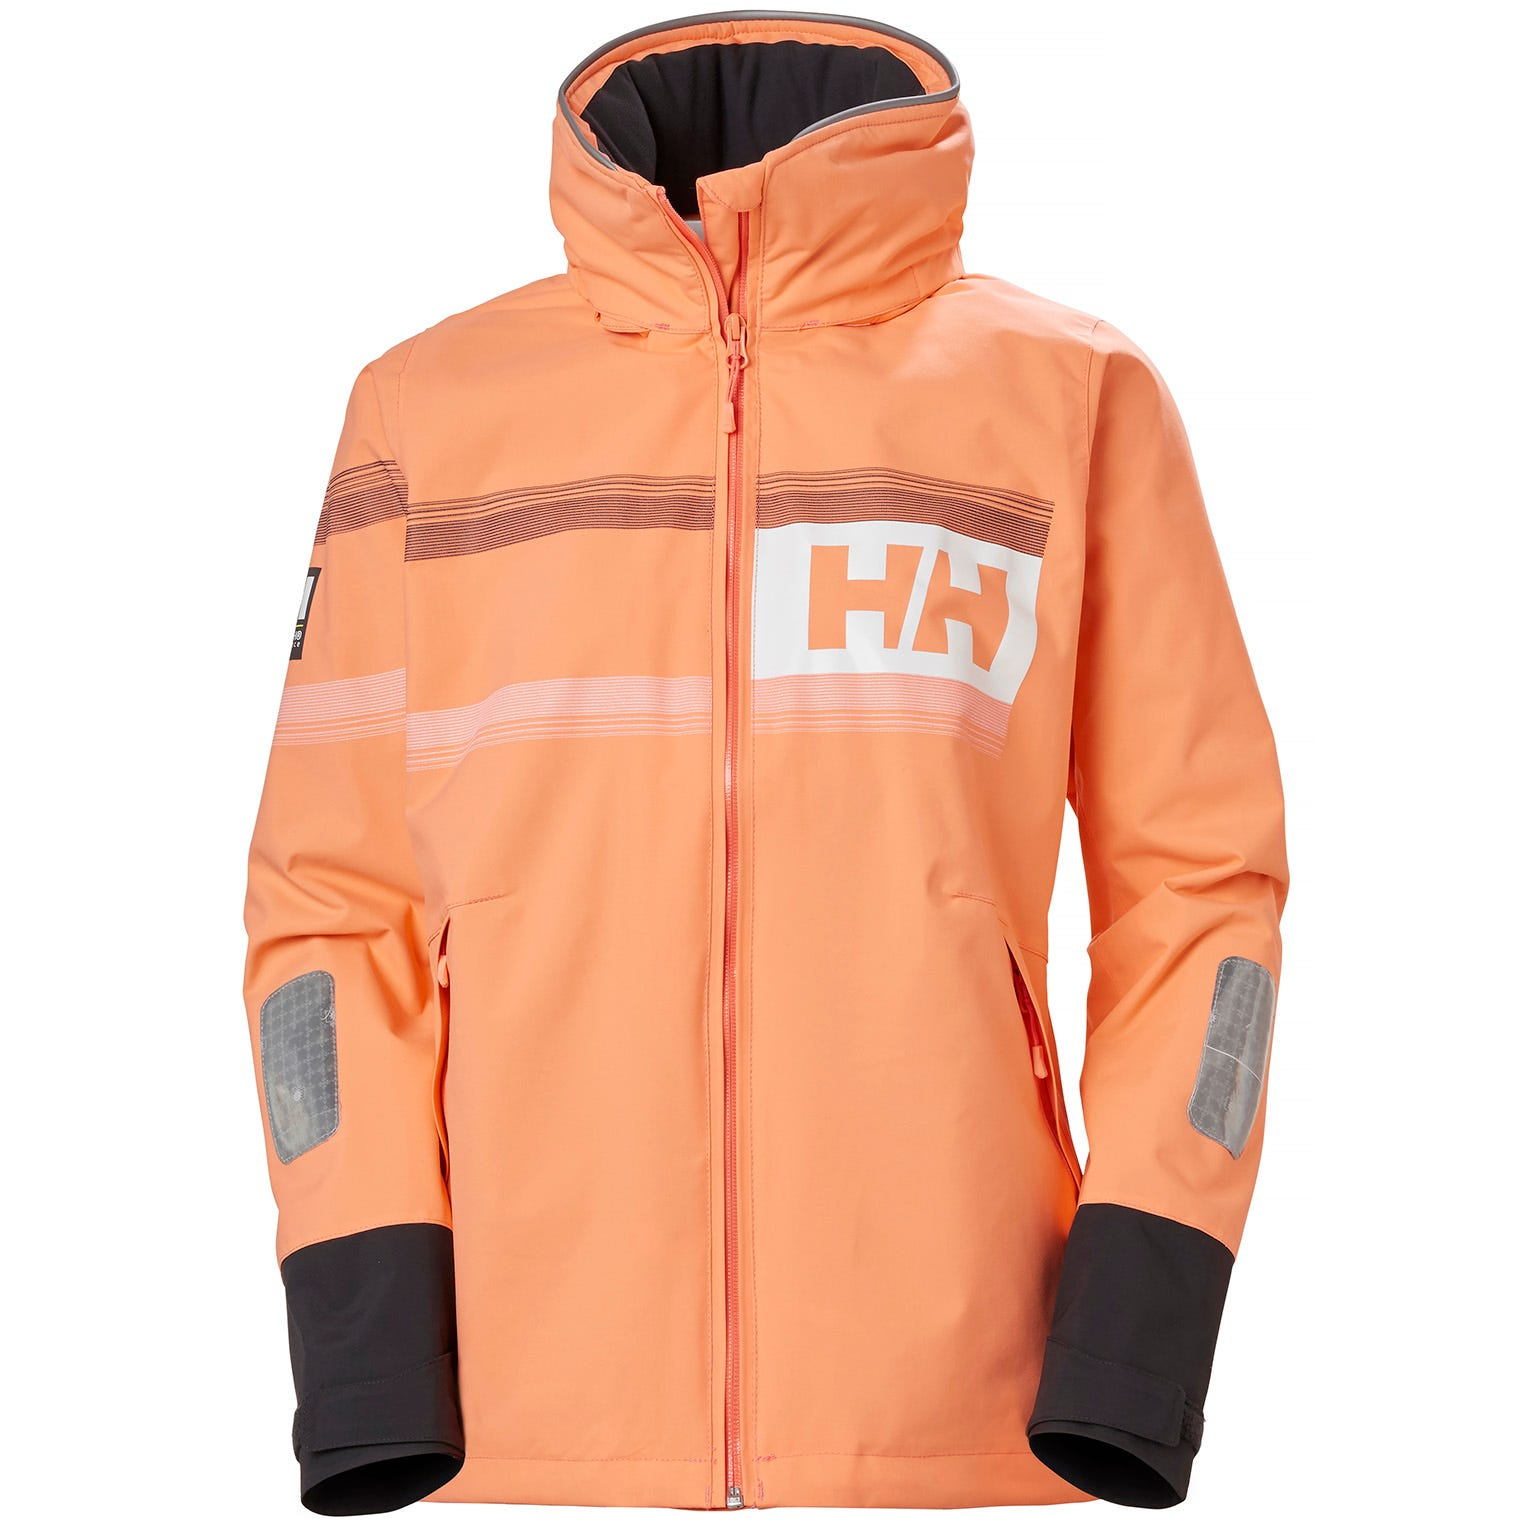 Helly Hansen Womens Salt Power Sailing Jacket Orange L